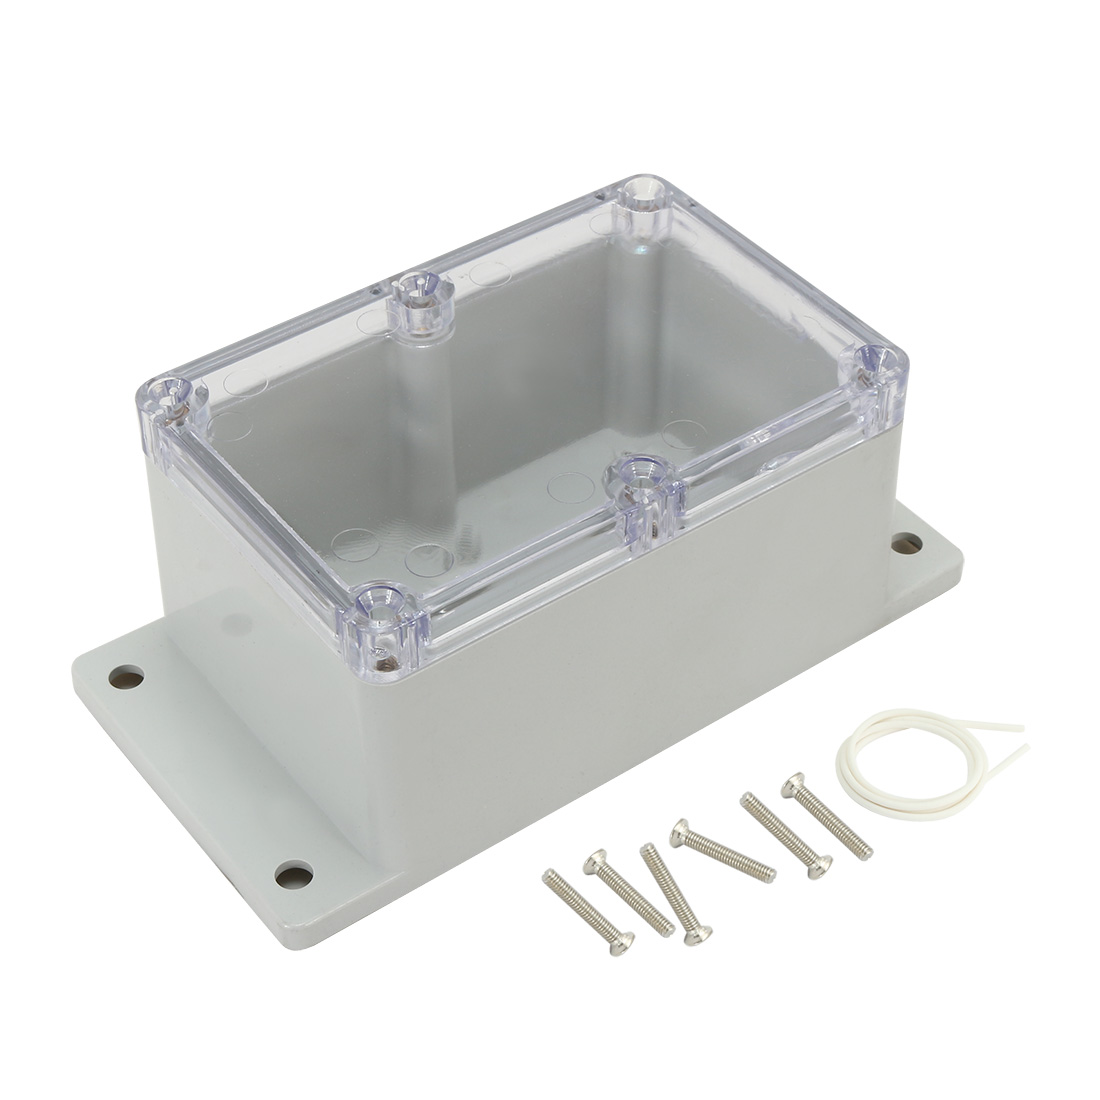 "6.34""x3.23""x2.52""(161mmx82mmx64mm) ABS Junction Box Universal Project Enclosure w PC Transparent Cover"